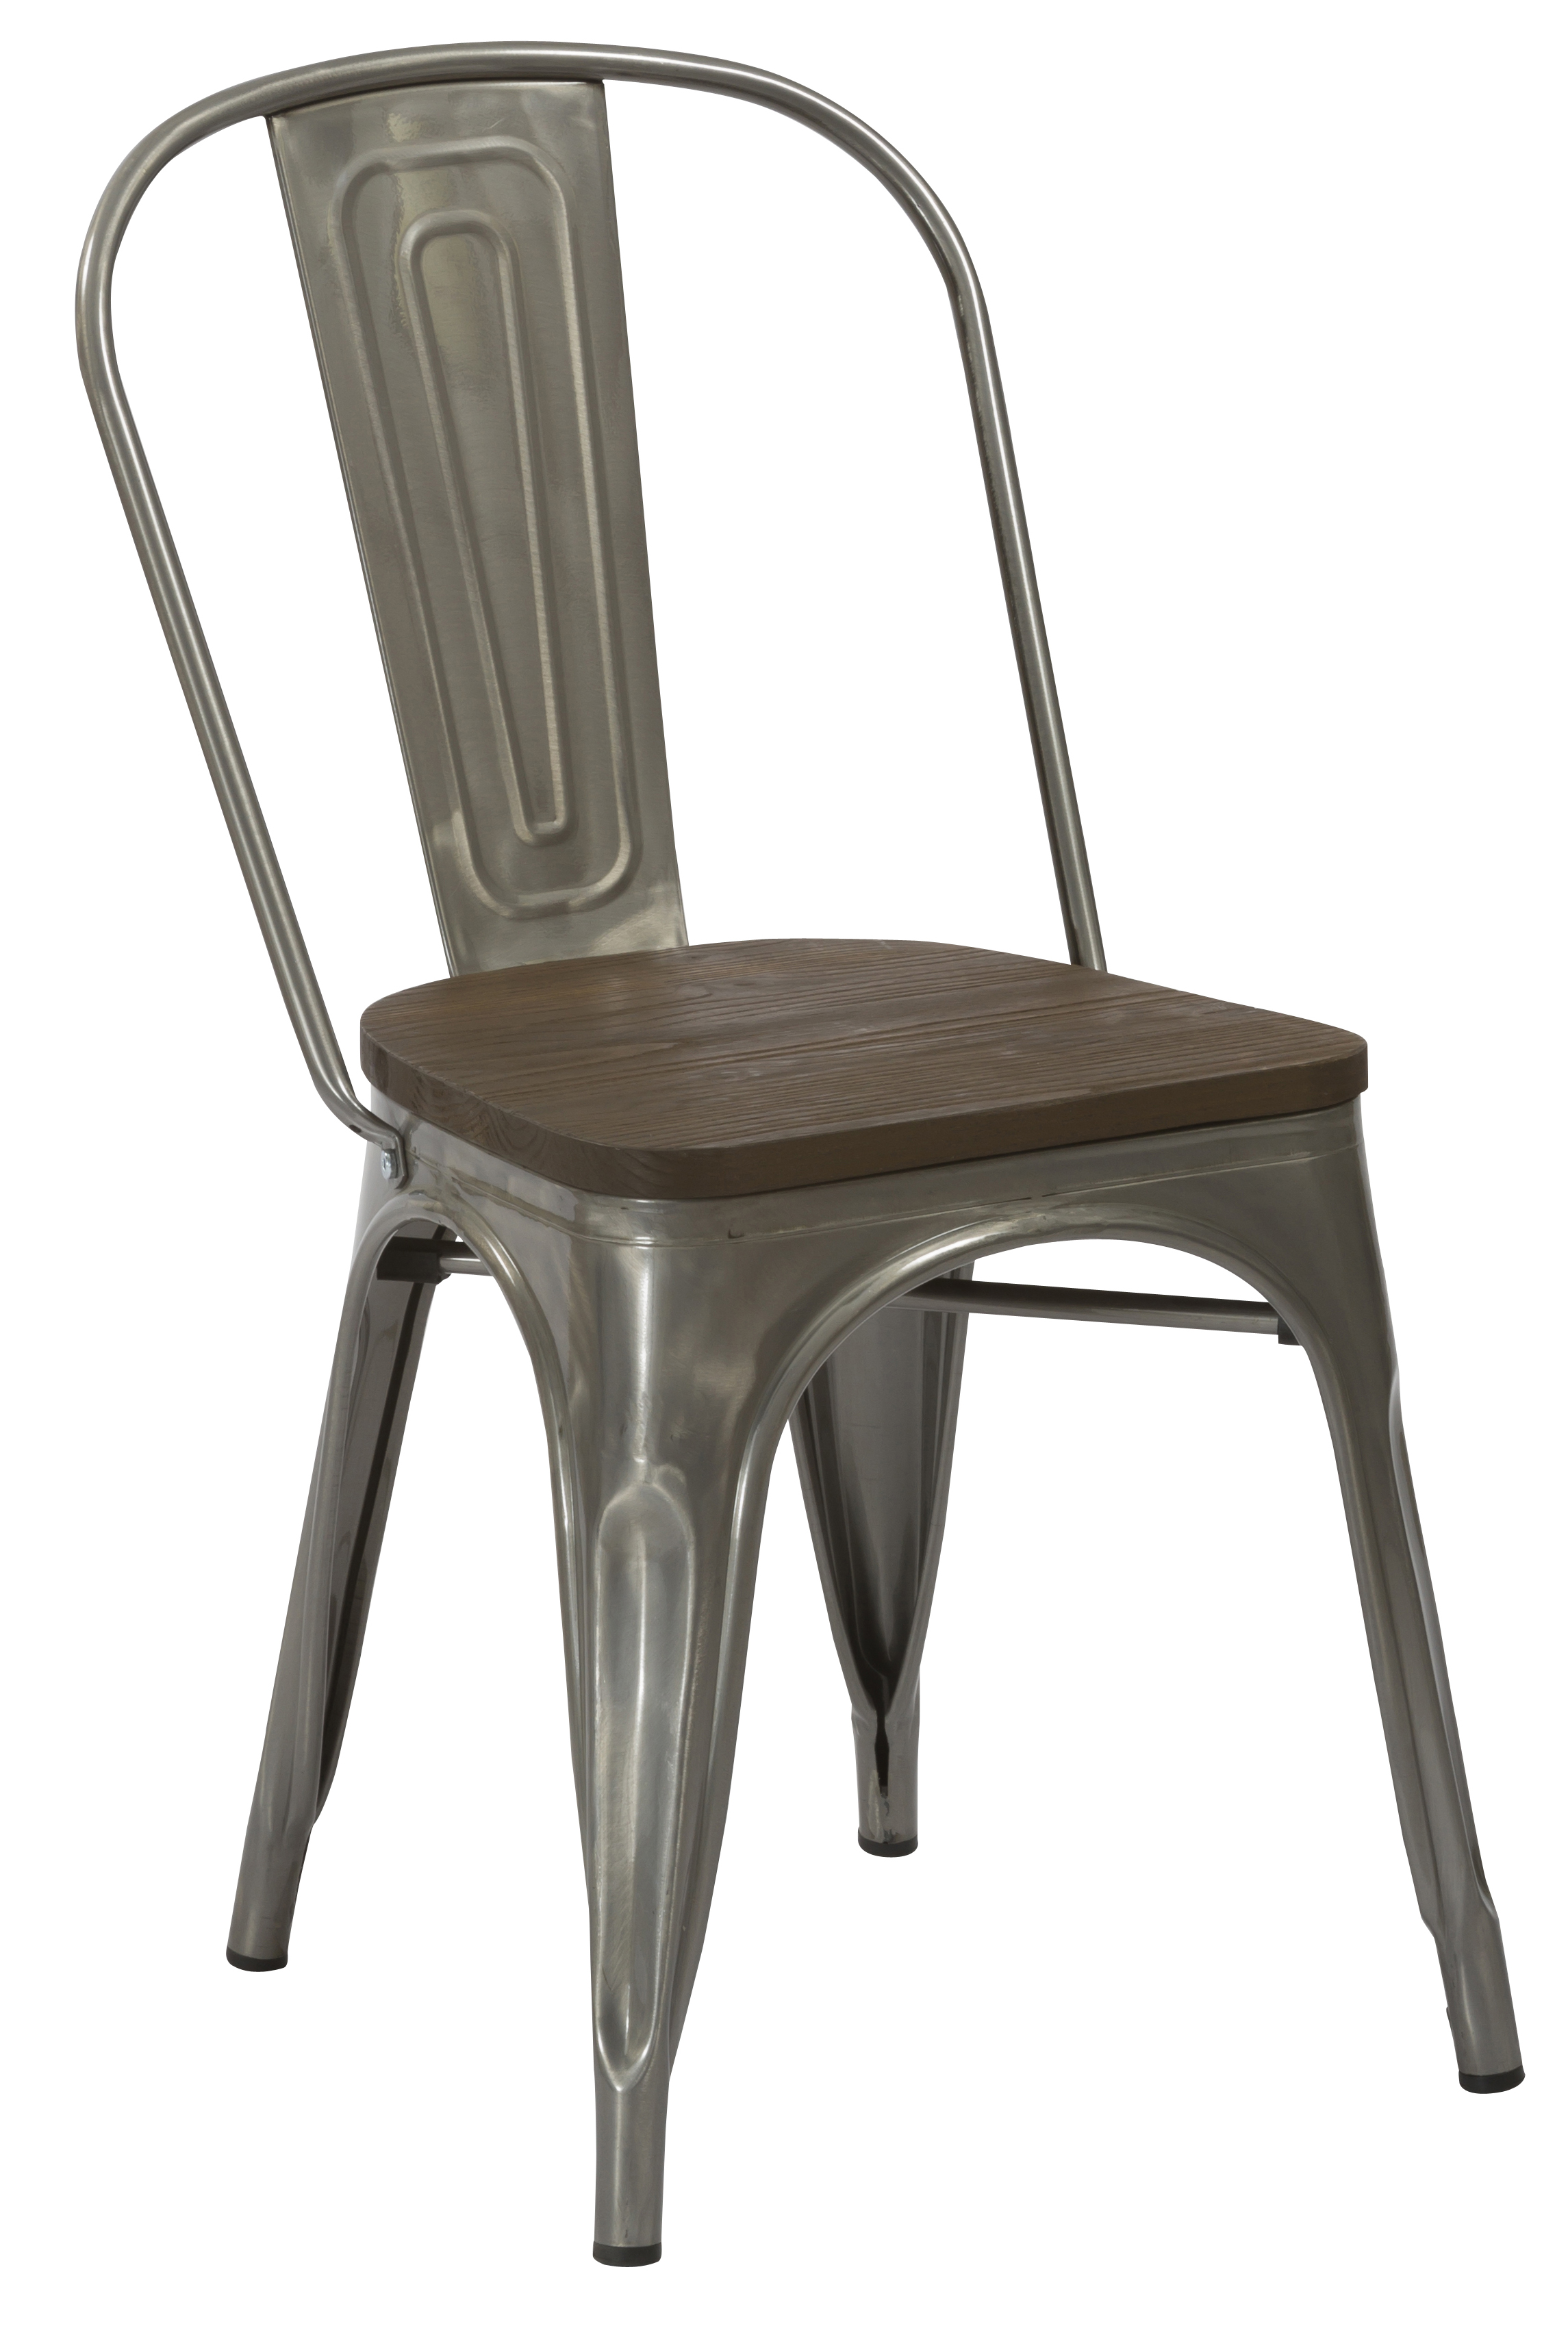 rustic metal dining chairs massage pedicure chair industrial antique gun distress cafe